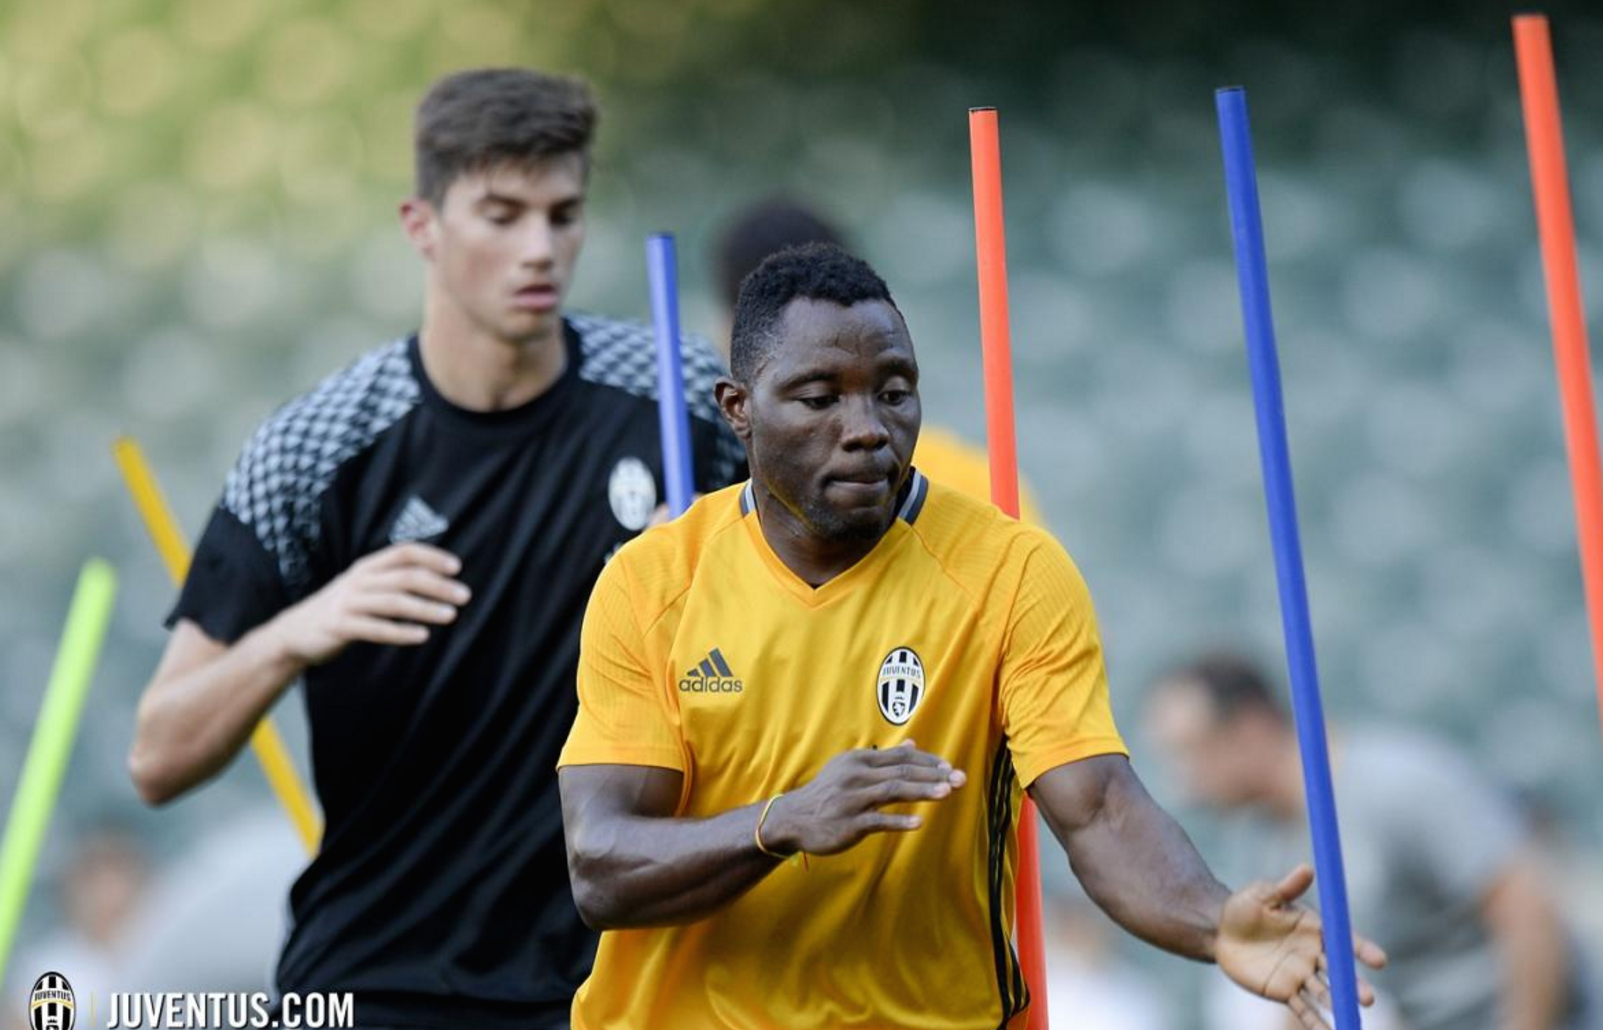 Juventus coach rests fatigued Kwadwo Asamoah against South China today in Hong Kong